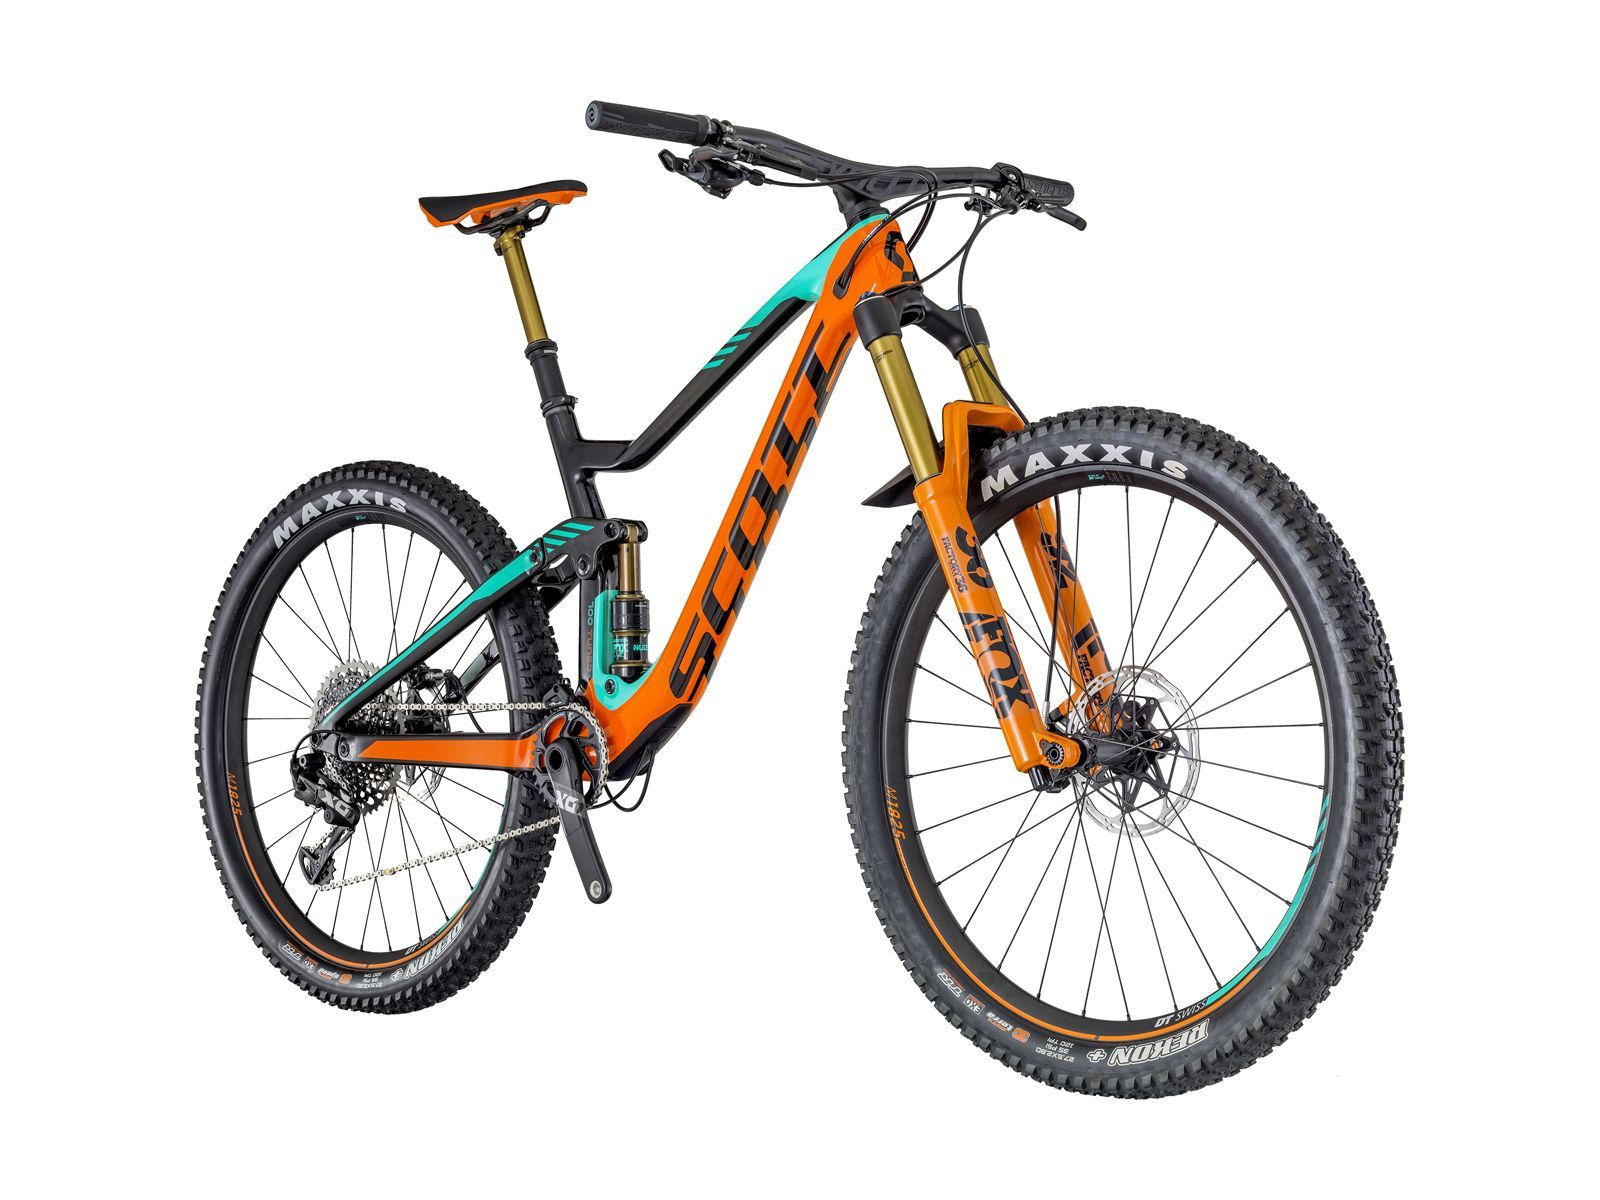 Marzocchi MTB Suspension: production of front forks, rear ...